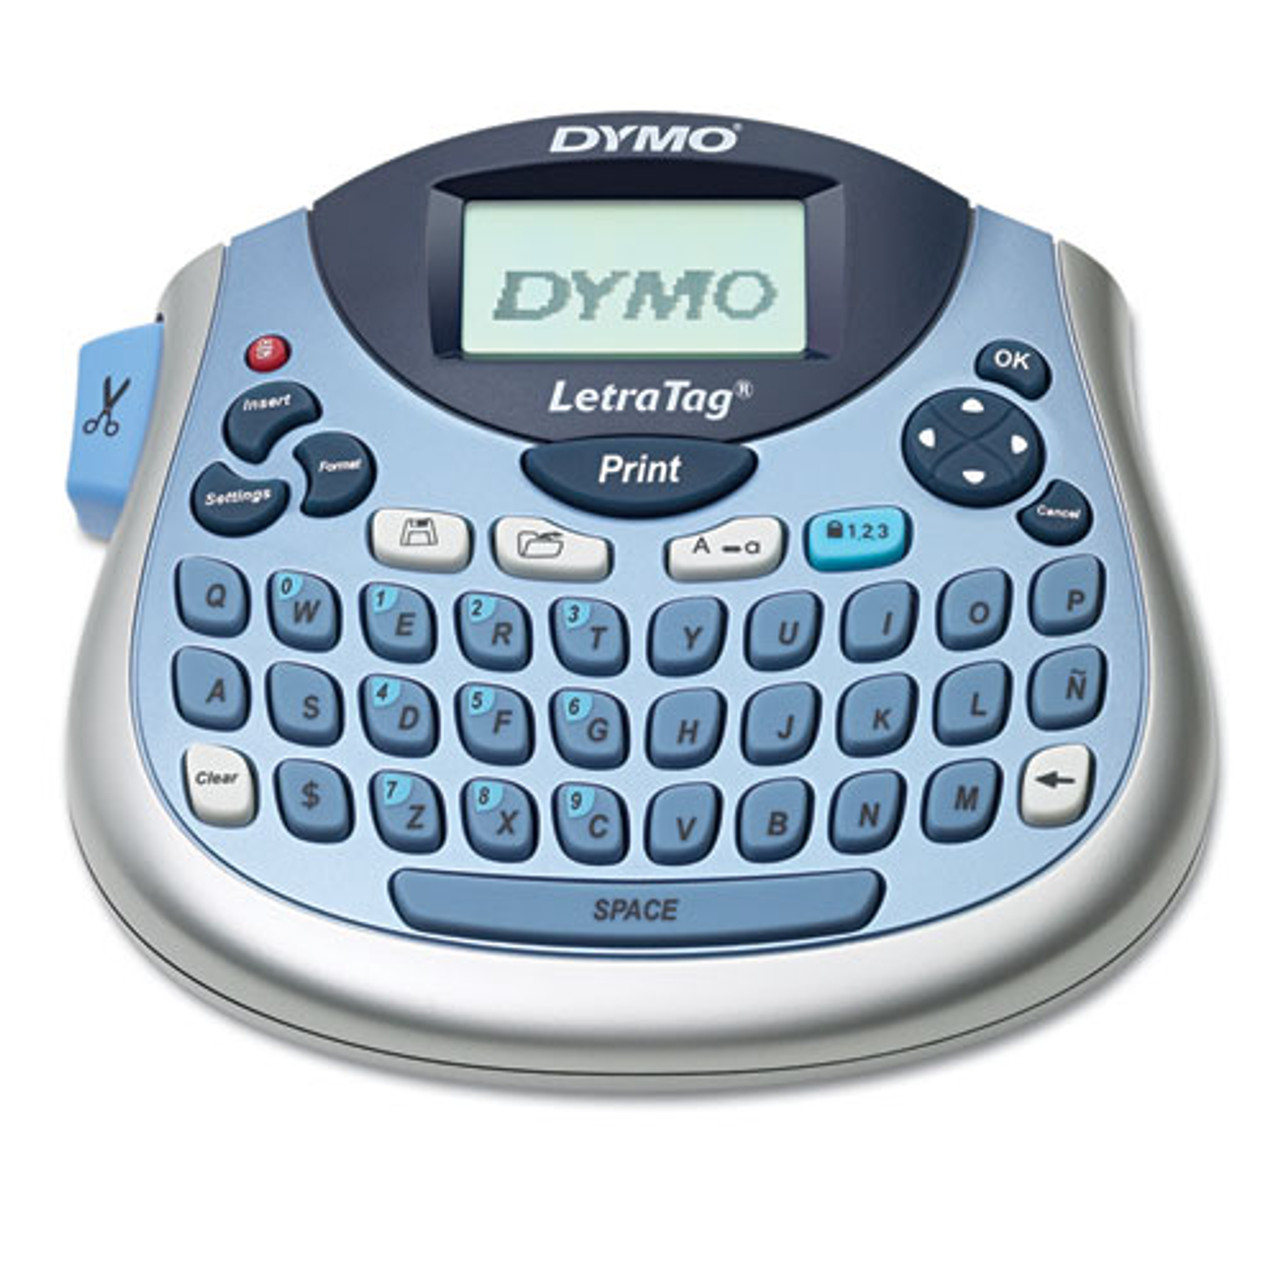 dymo letratag instructions for use